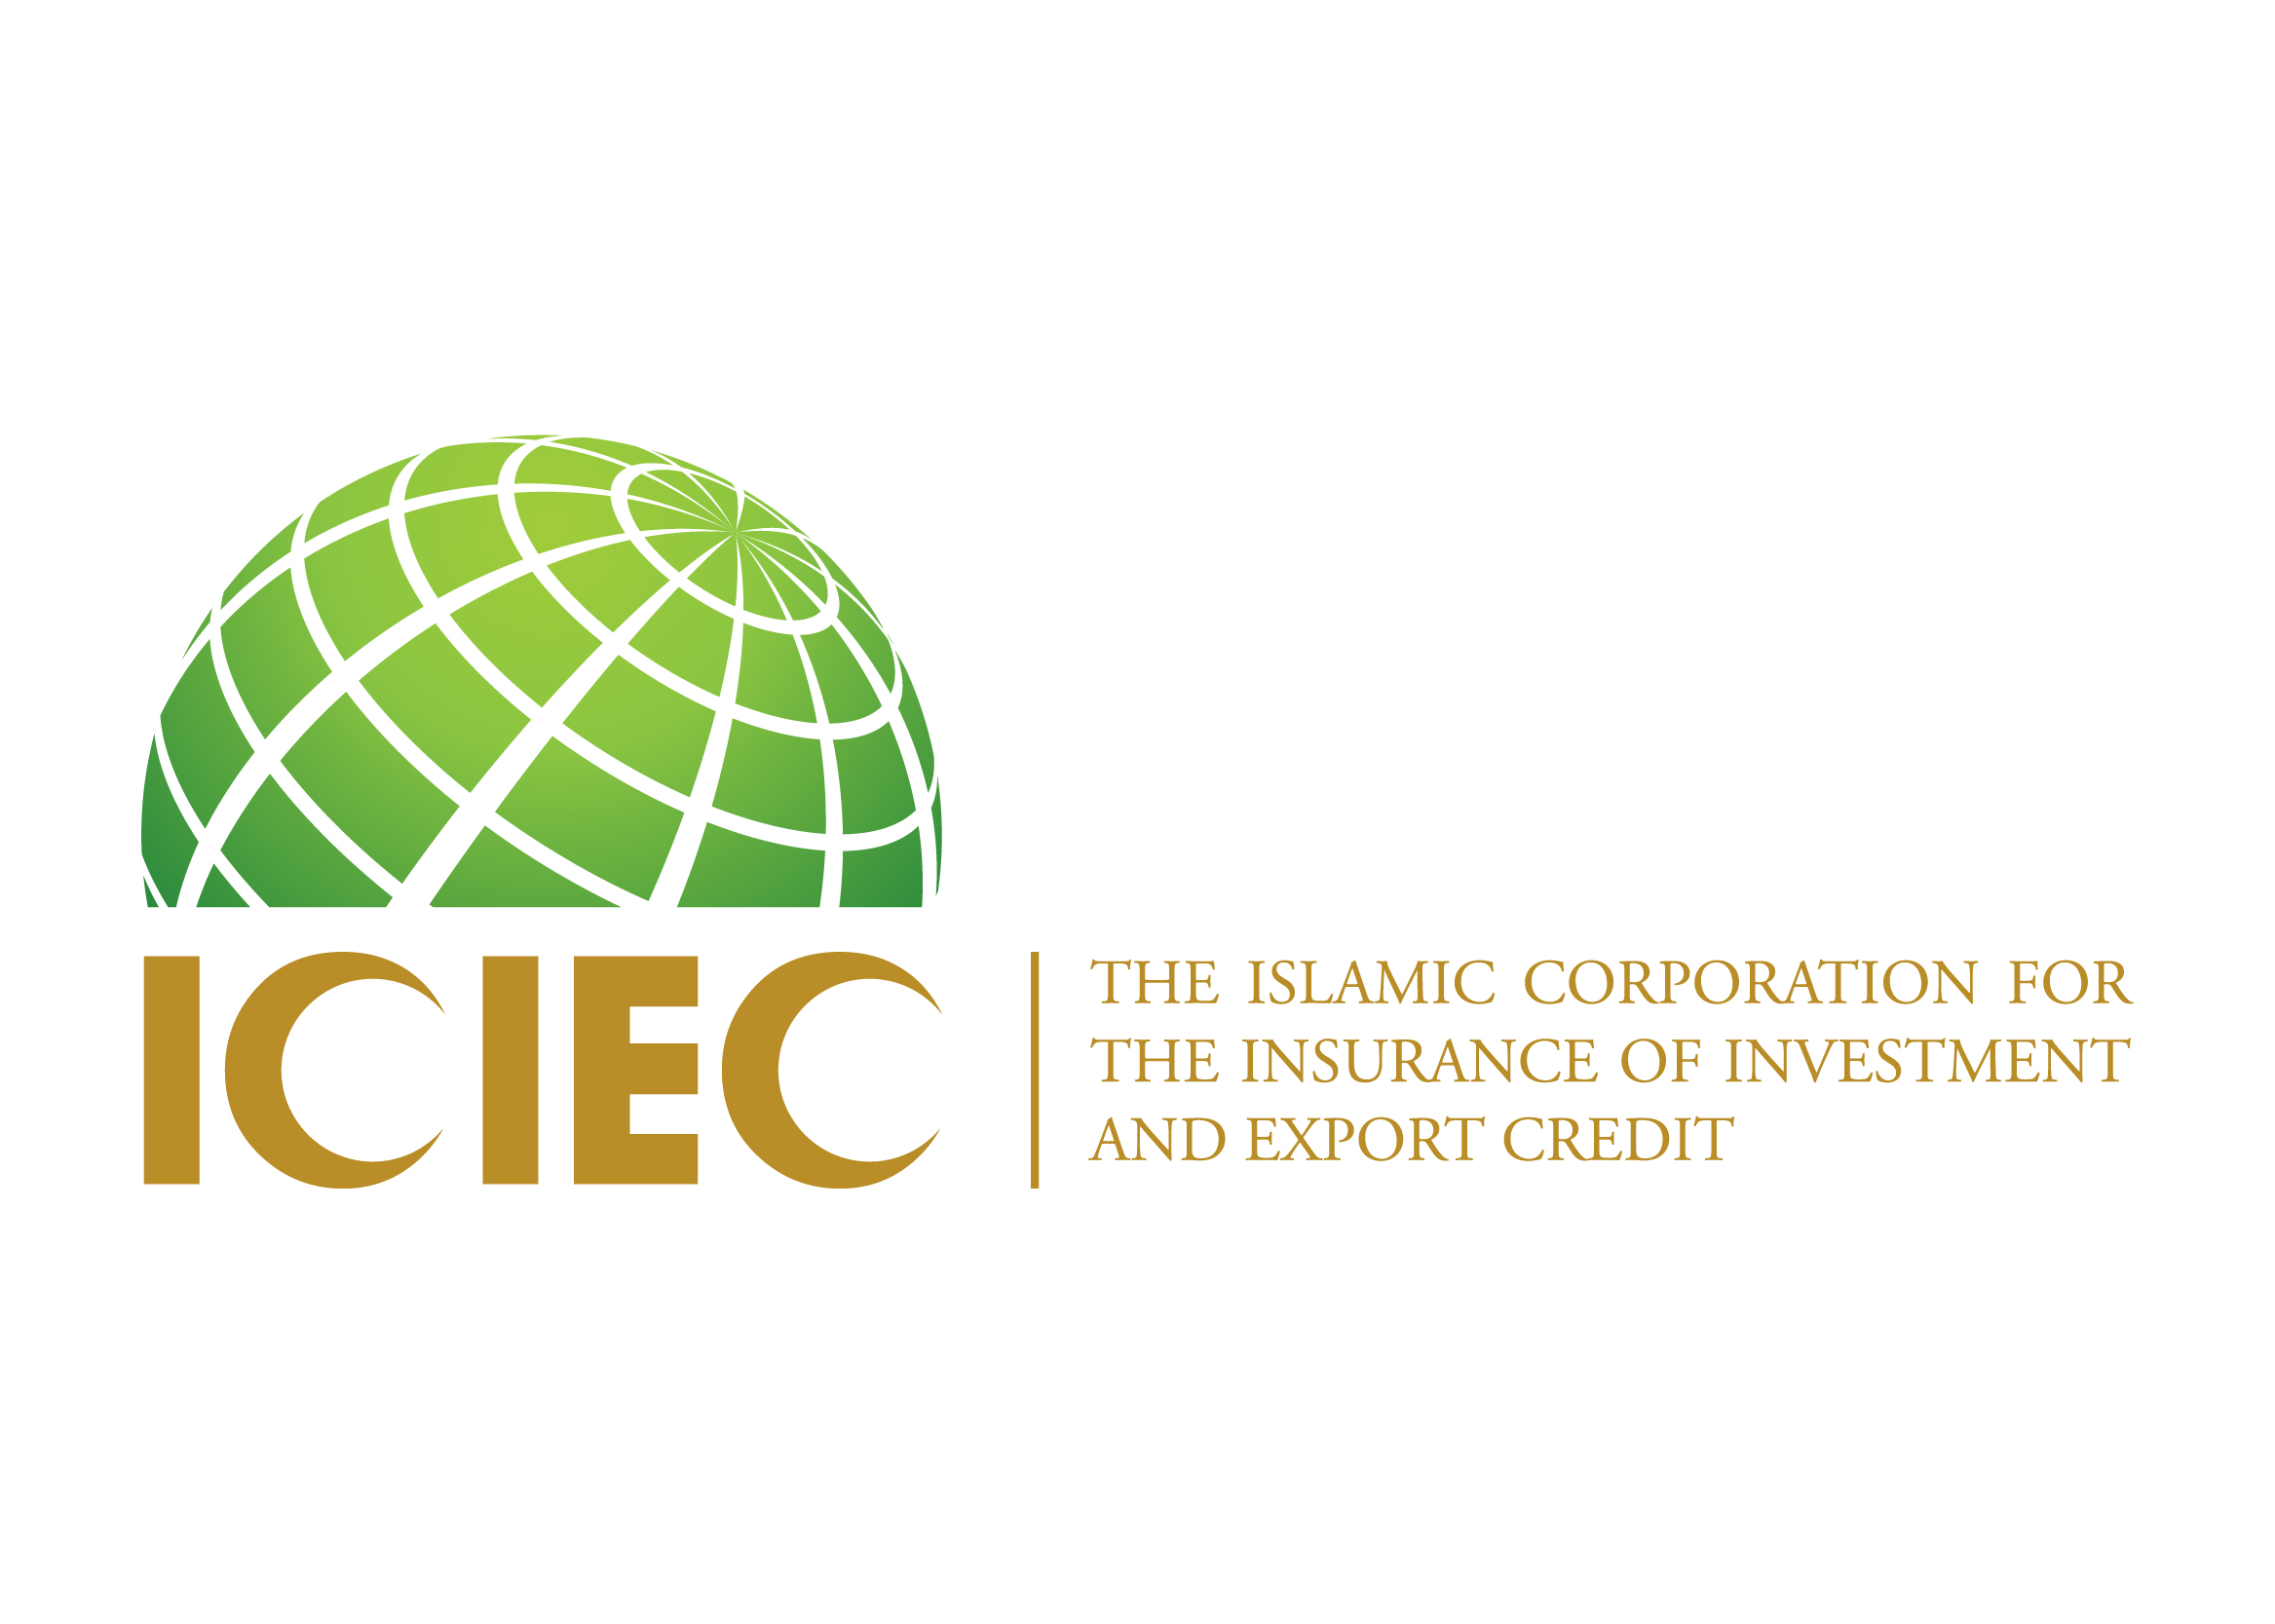 The Islamic Corporation for the Insurance of Investment and Export Credit